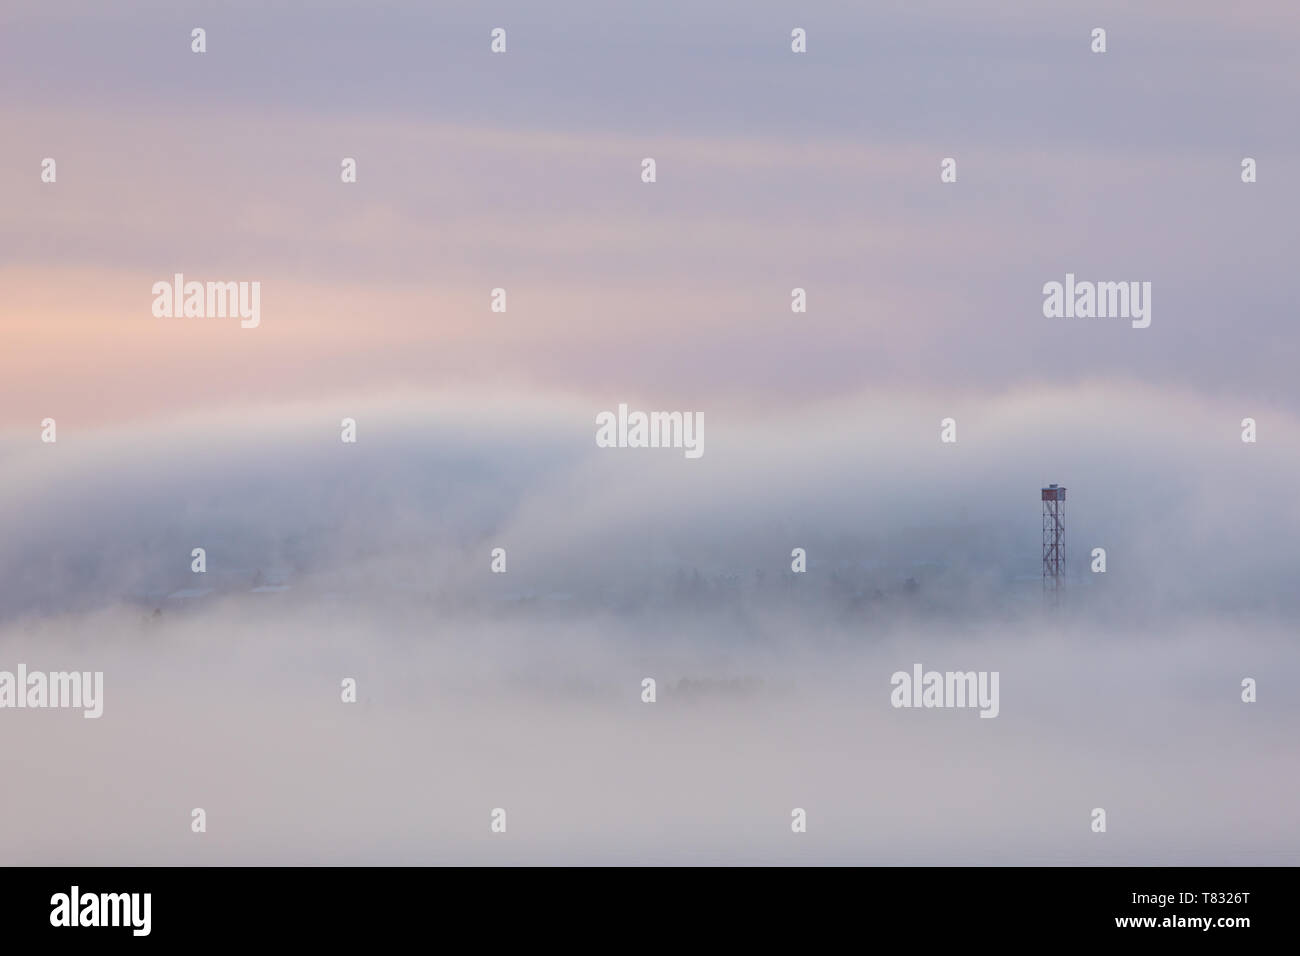 Thick fog at sunrise over hill and city buildings Stock Photo